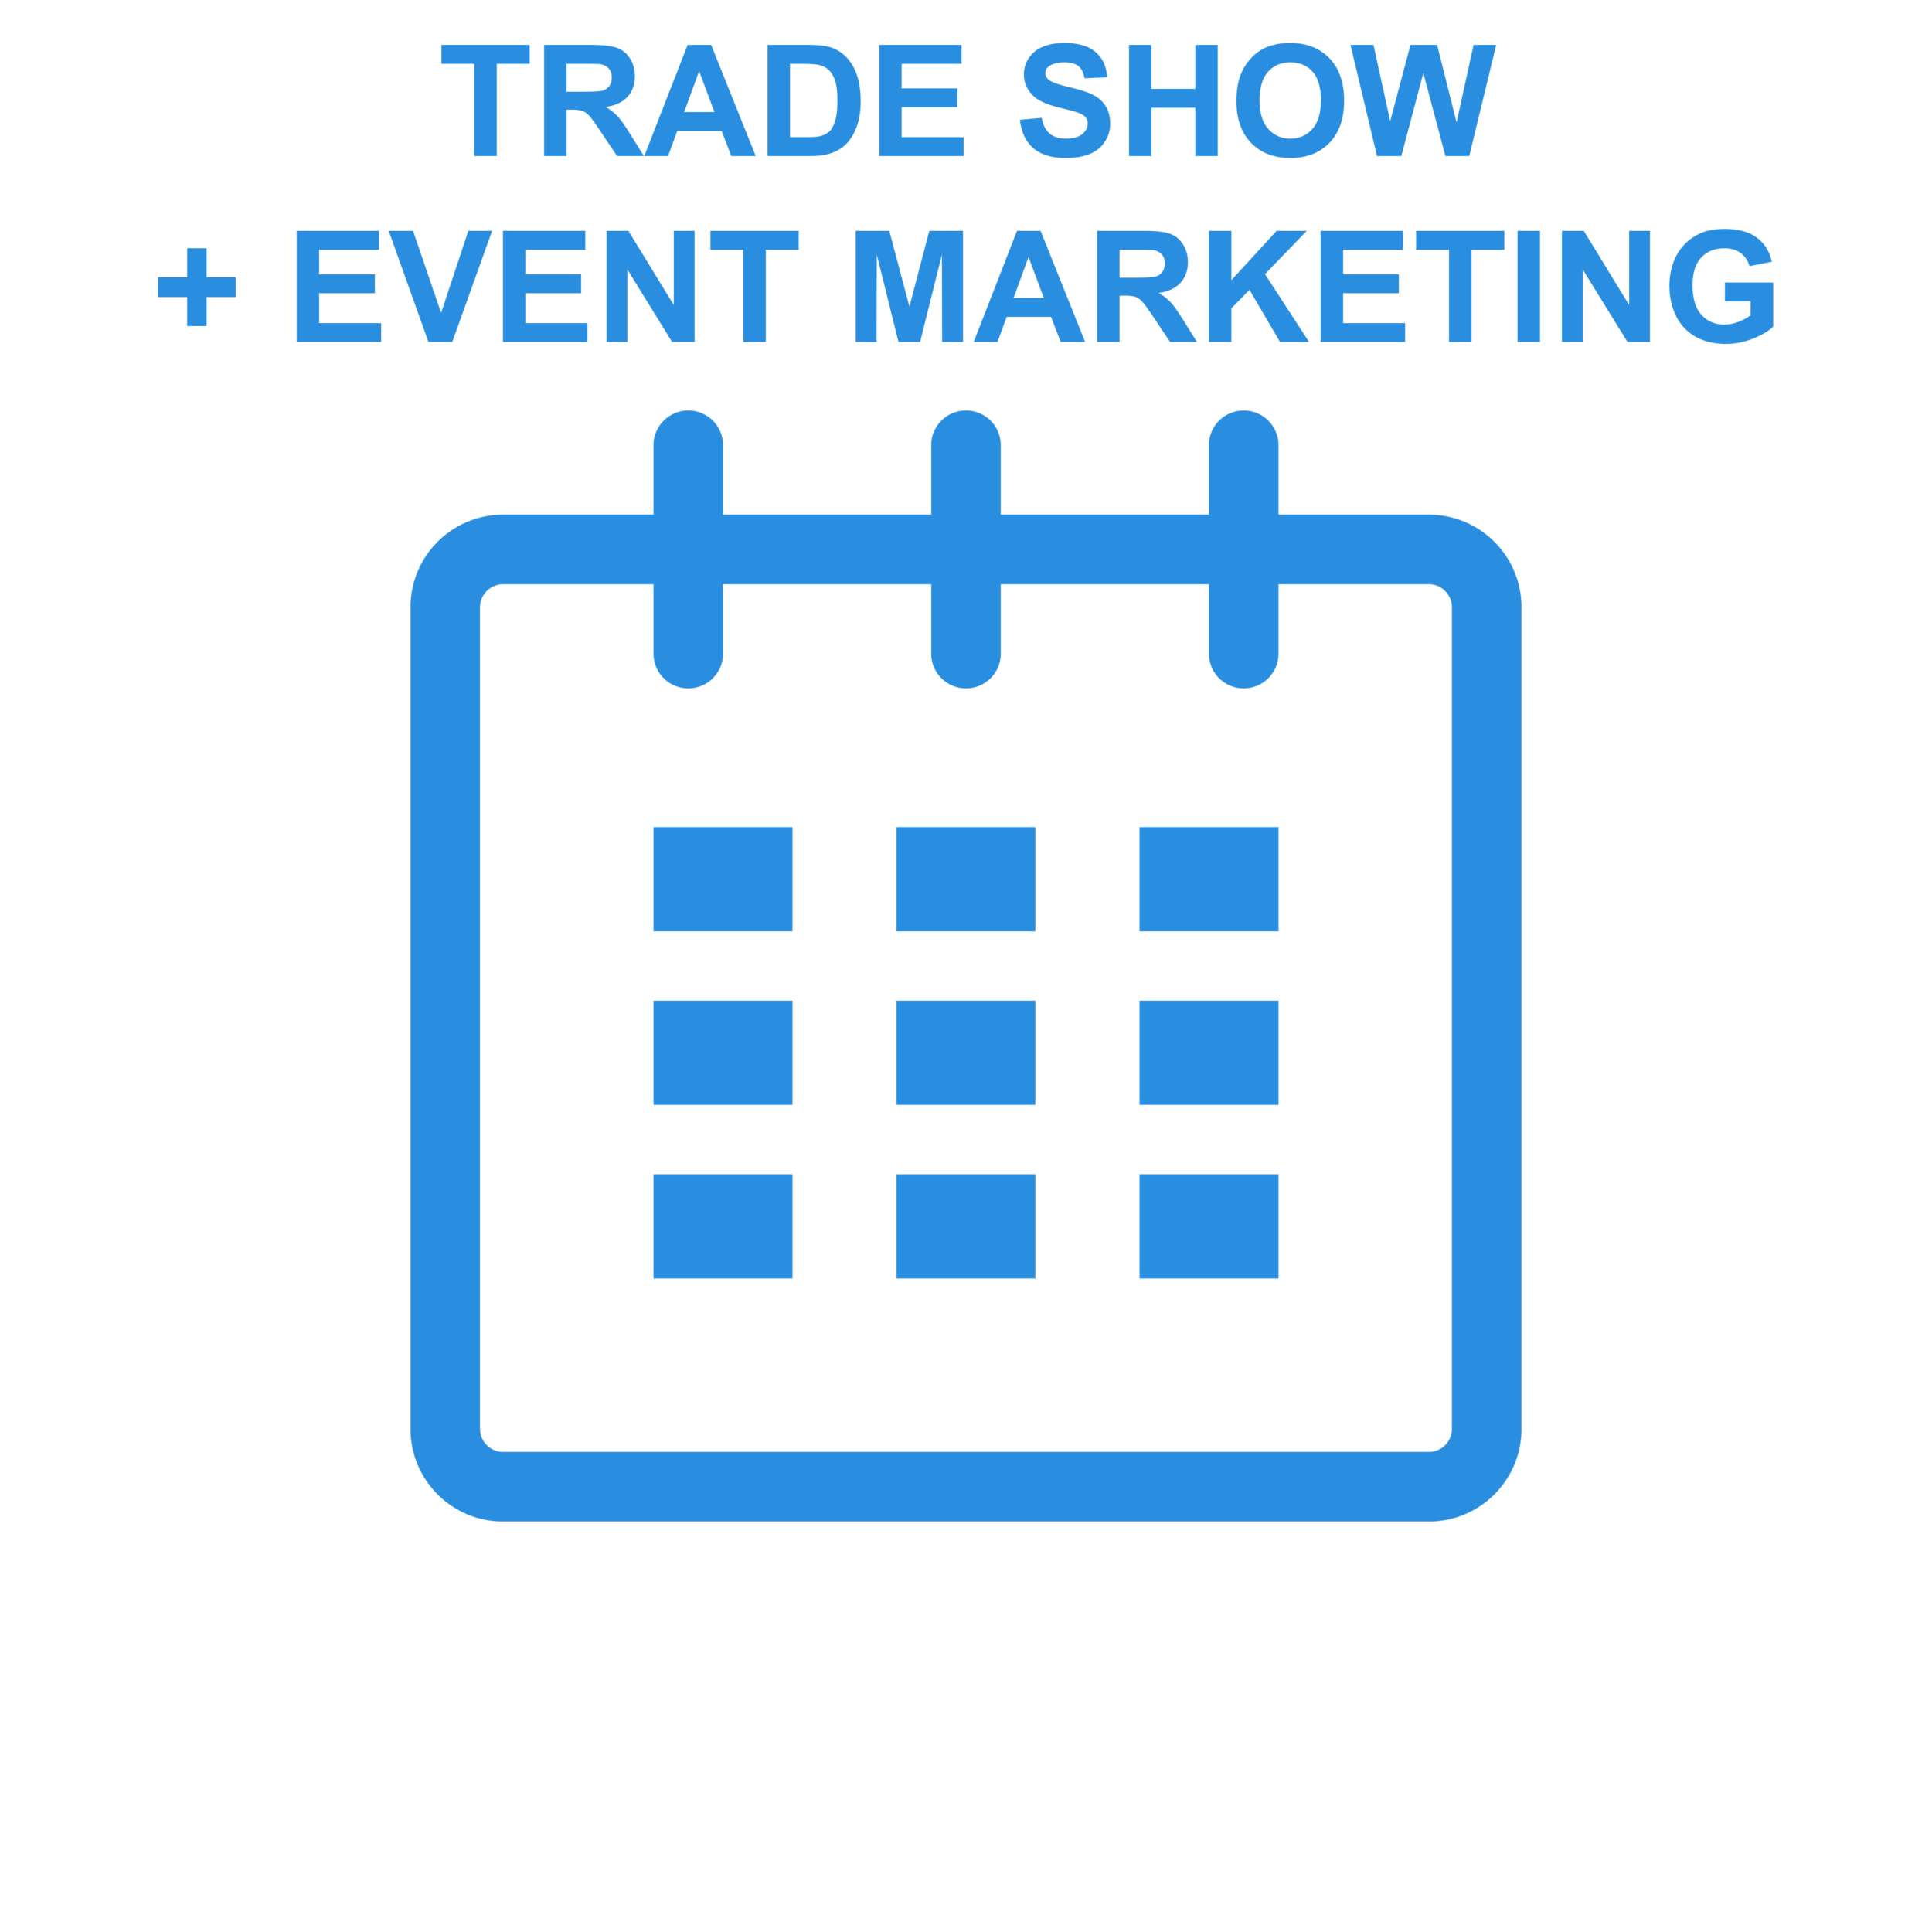 trade-show-event-marketing-kotiadis-consulting copy.png